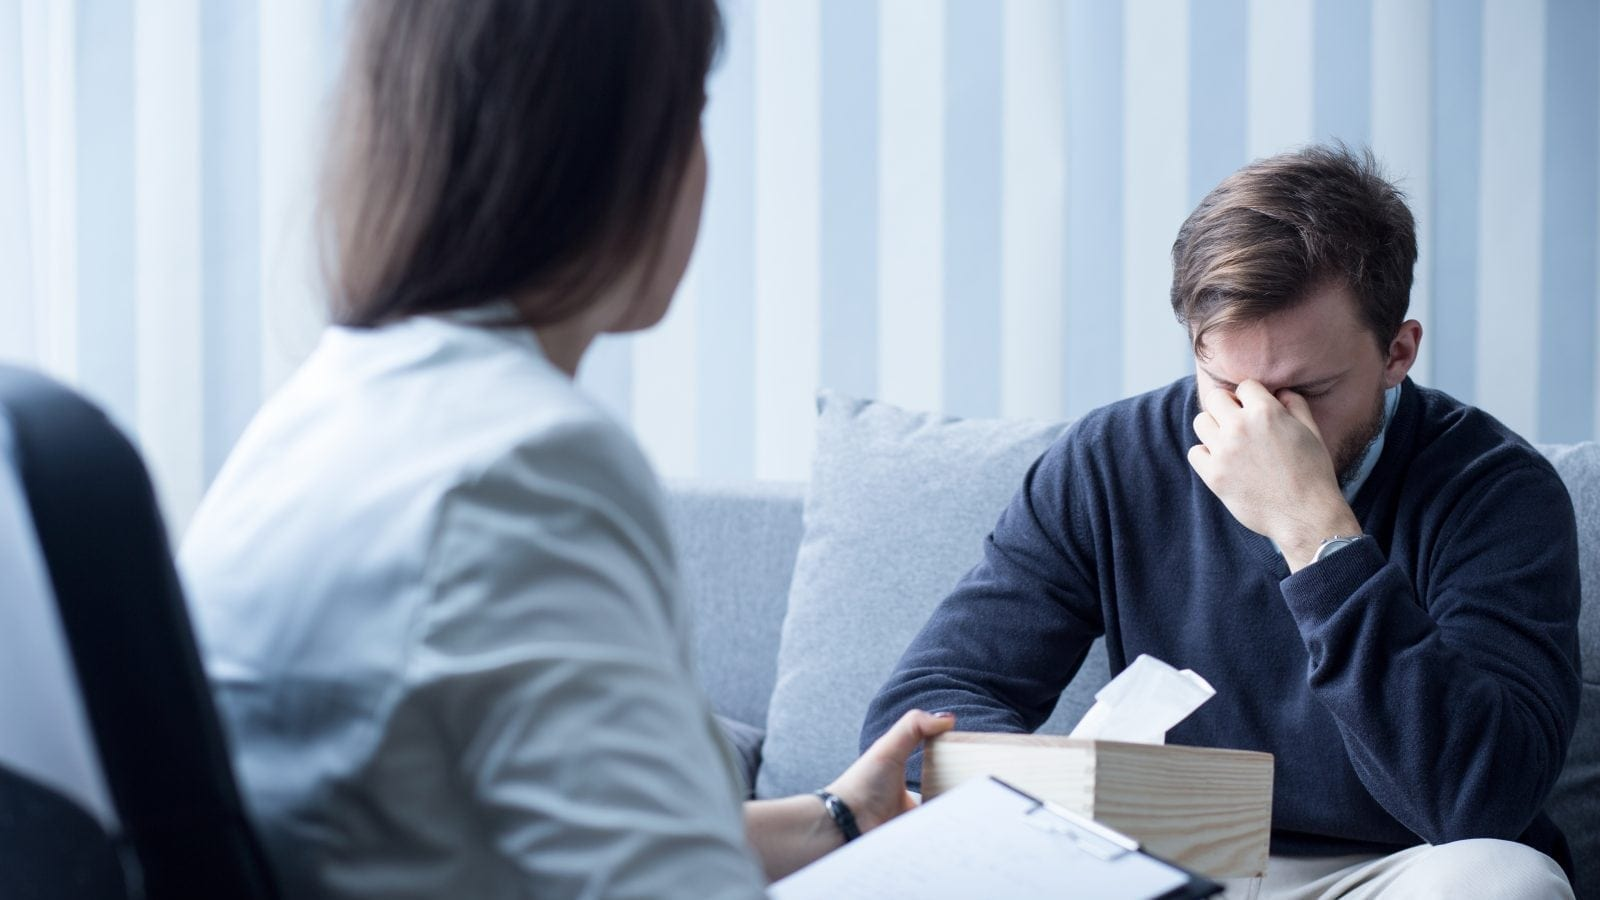 Female Counselor Helping Depressed Man